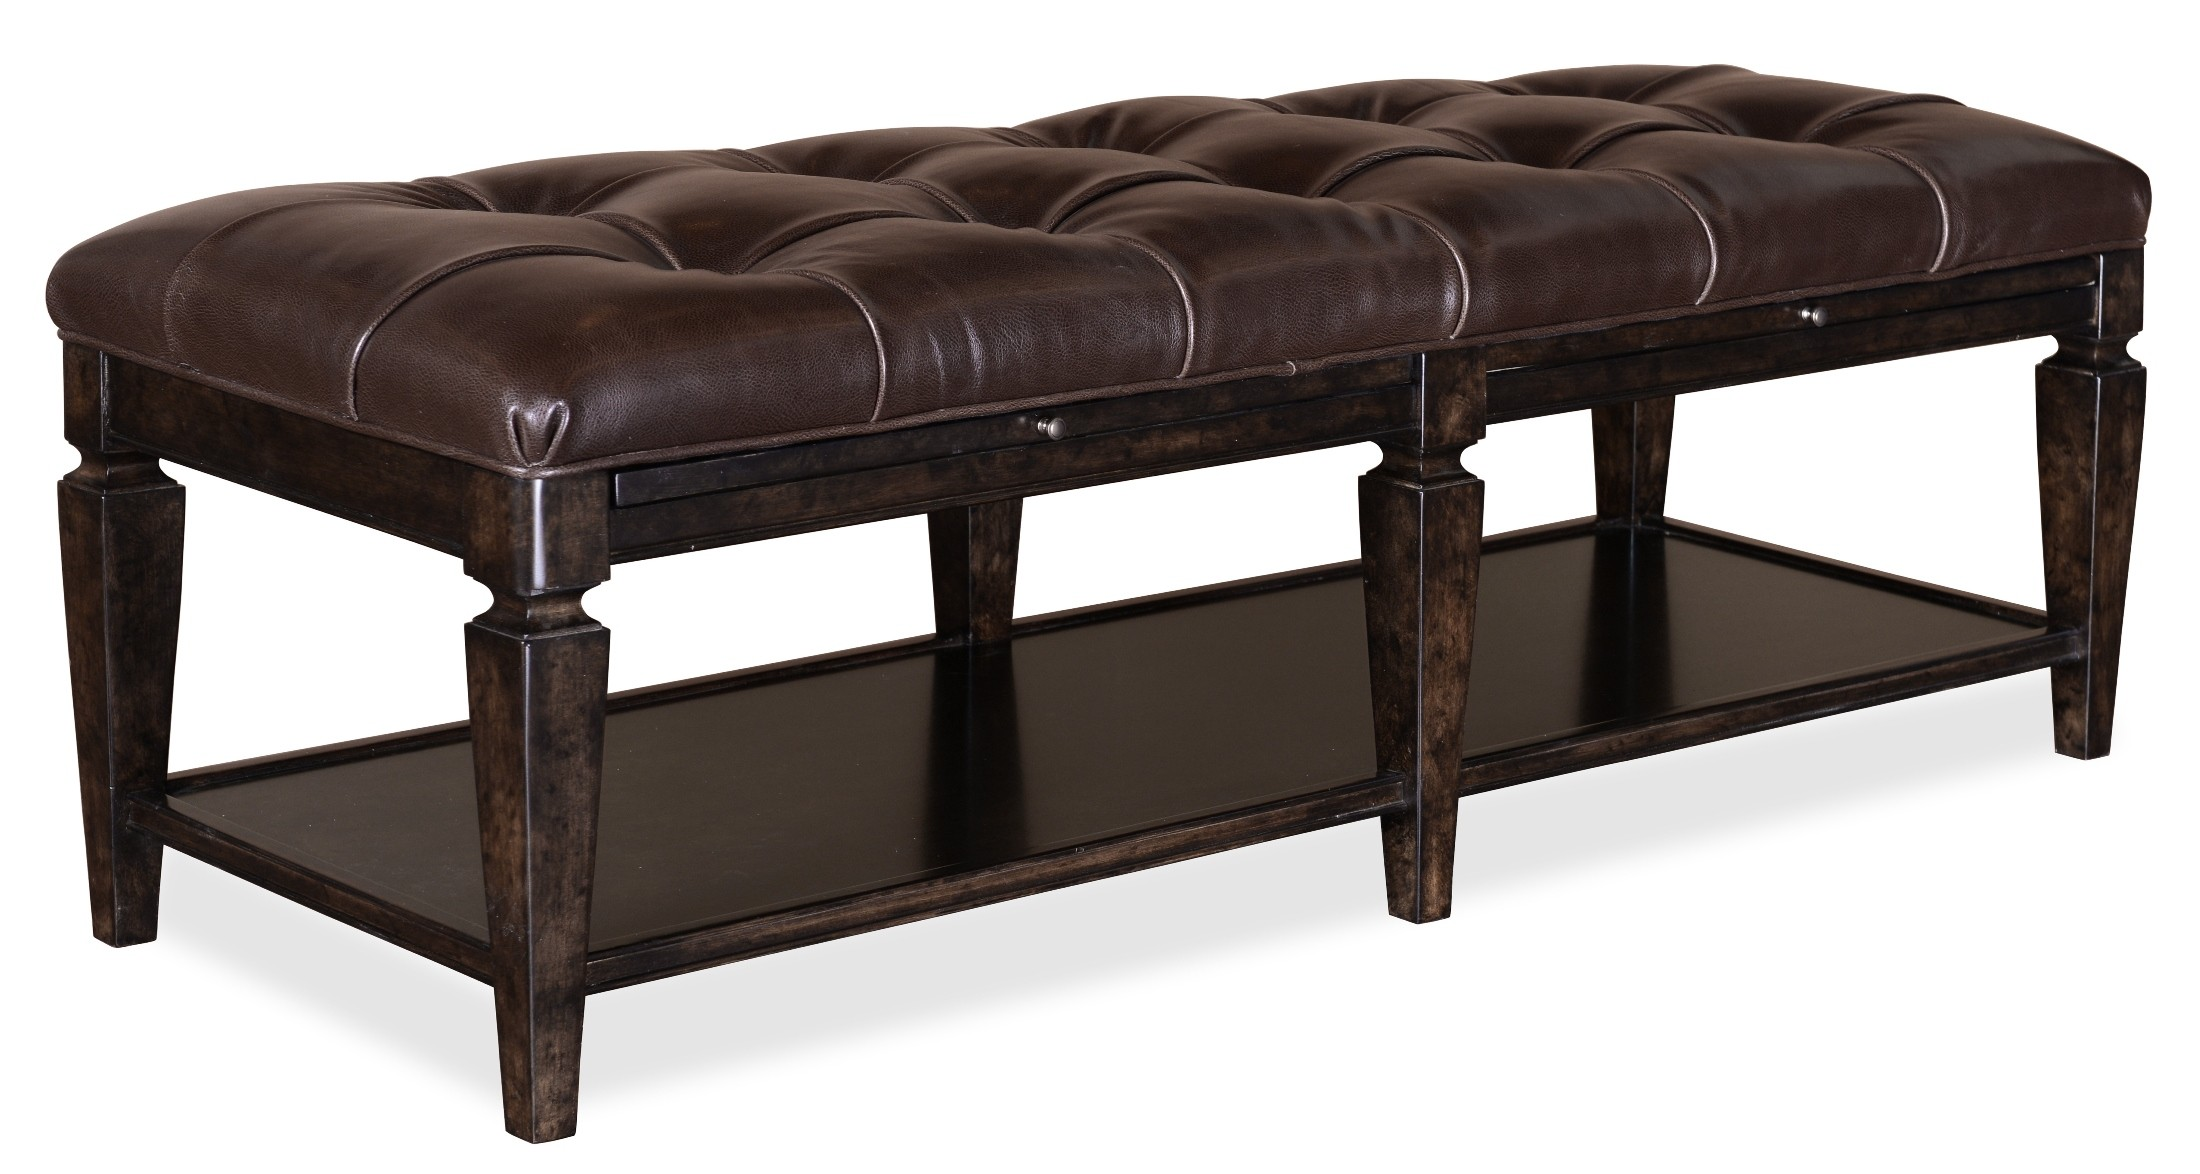 Classic Tufted Leather Bench From Art 202149 1715 Coleman Furniture